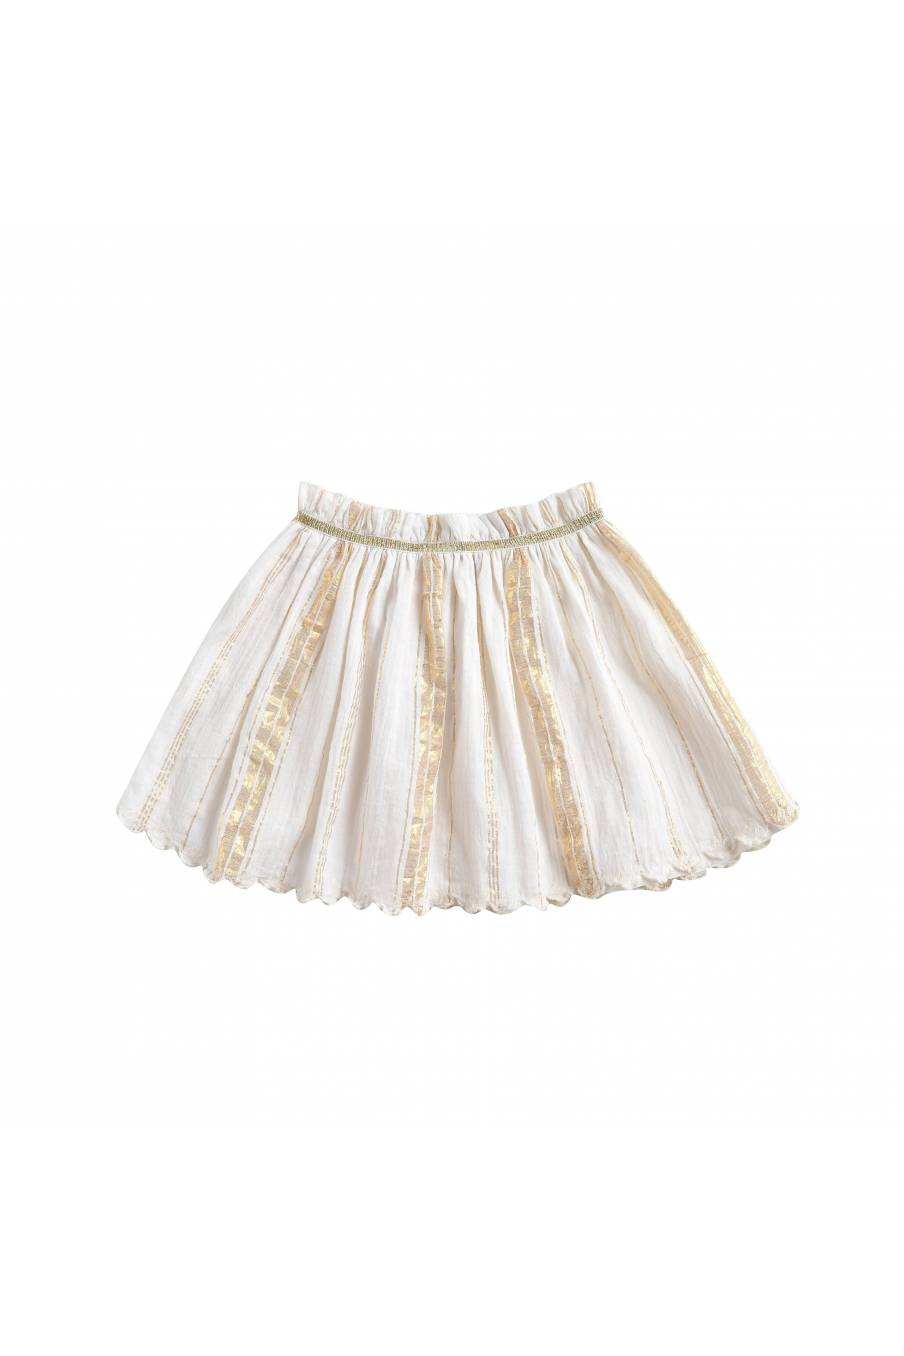 Skirt Salina White & Gold Stripes